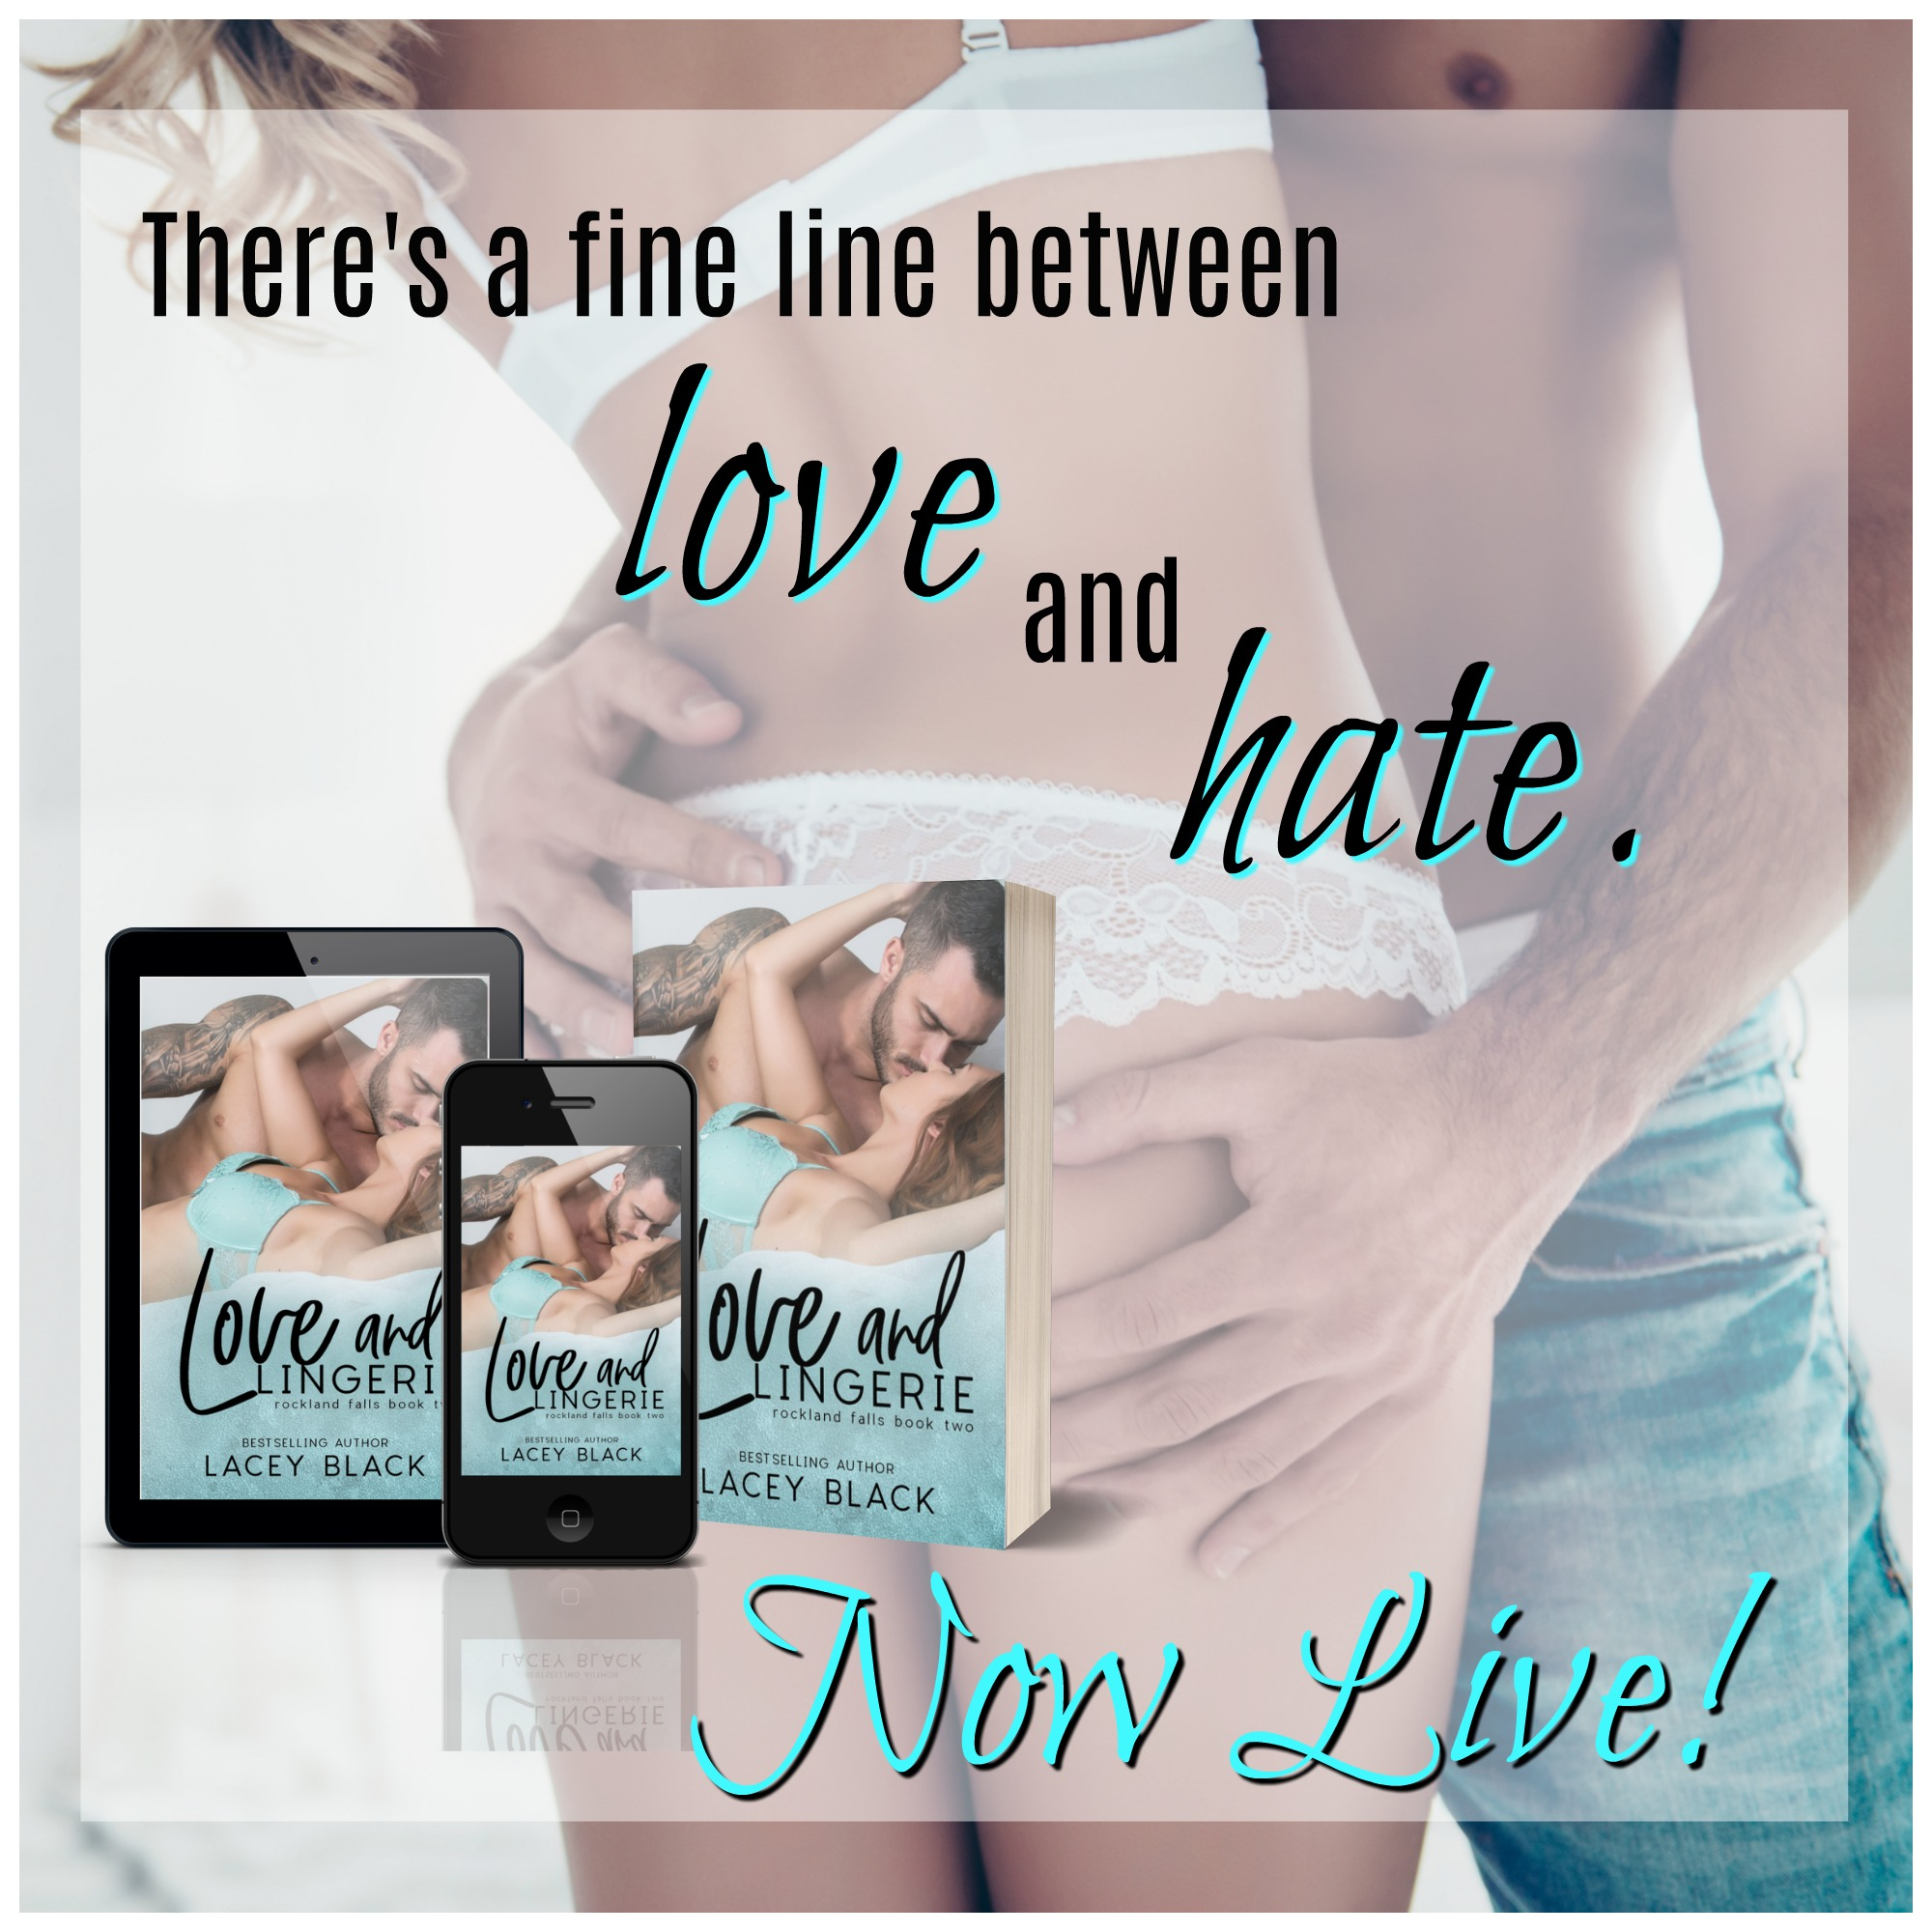 Lingerie_LoveAndHate_now live